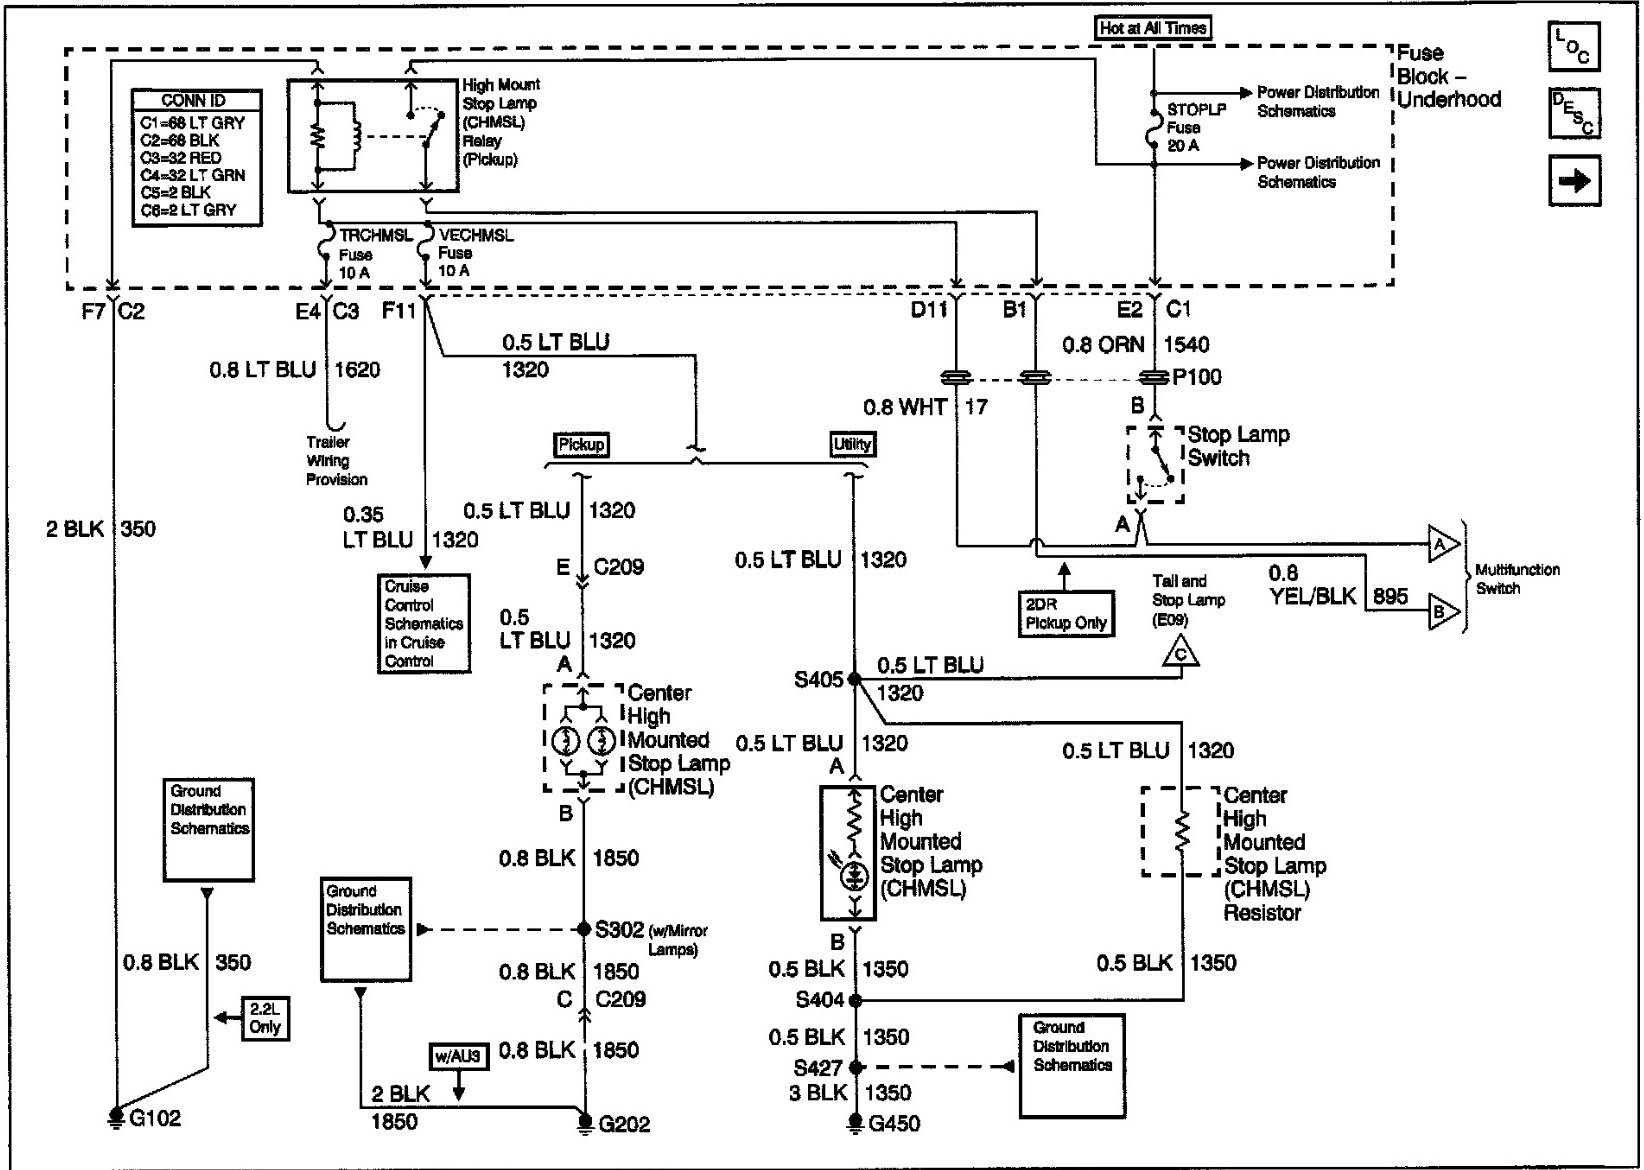 2000 Gmc Jimmy Wiring Diagram from ww2.justanswer.com